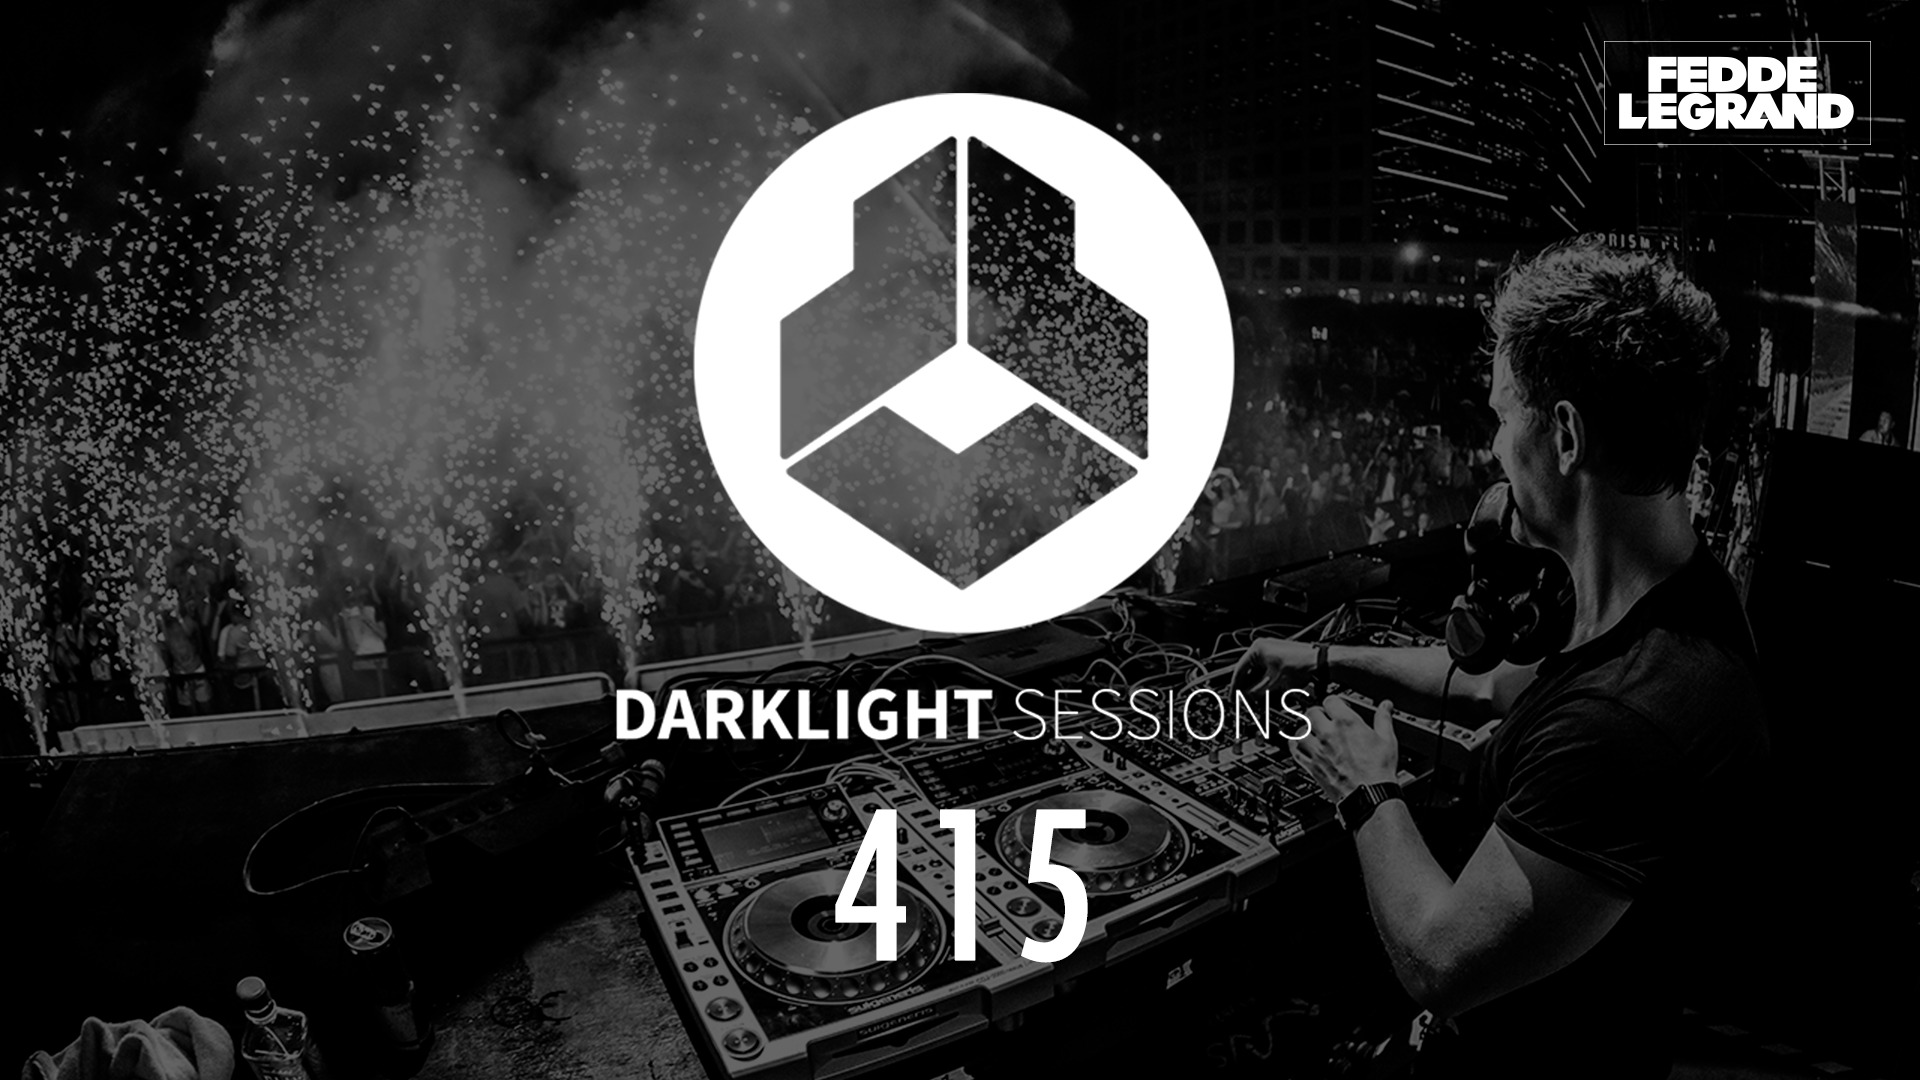 Darklight Sessions 415